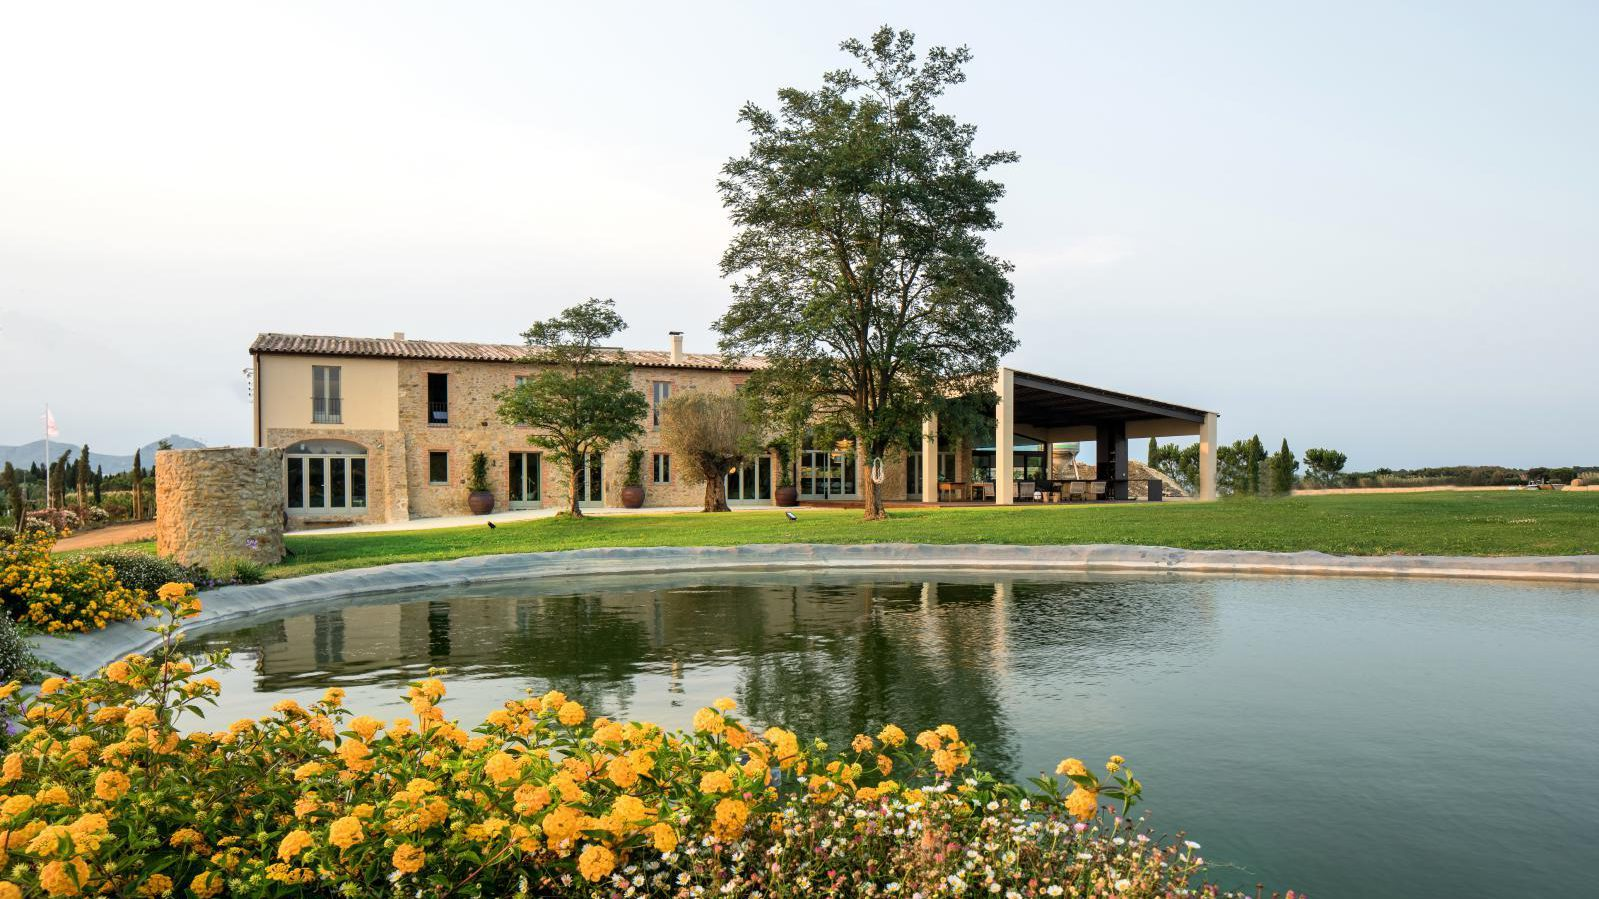 1. Luxury villa for sale in Girona e1502278788829 - This Girona residence is absolutely gorgeous!